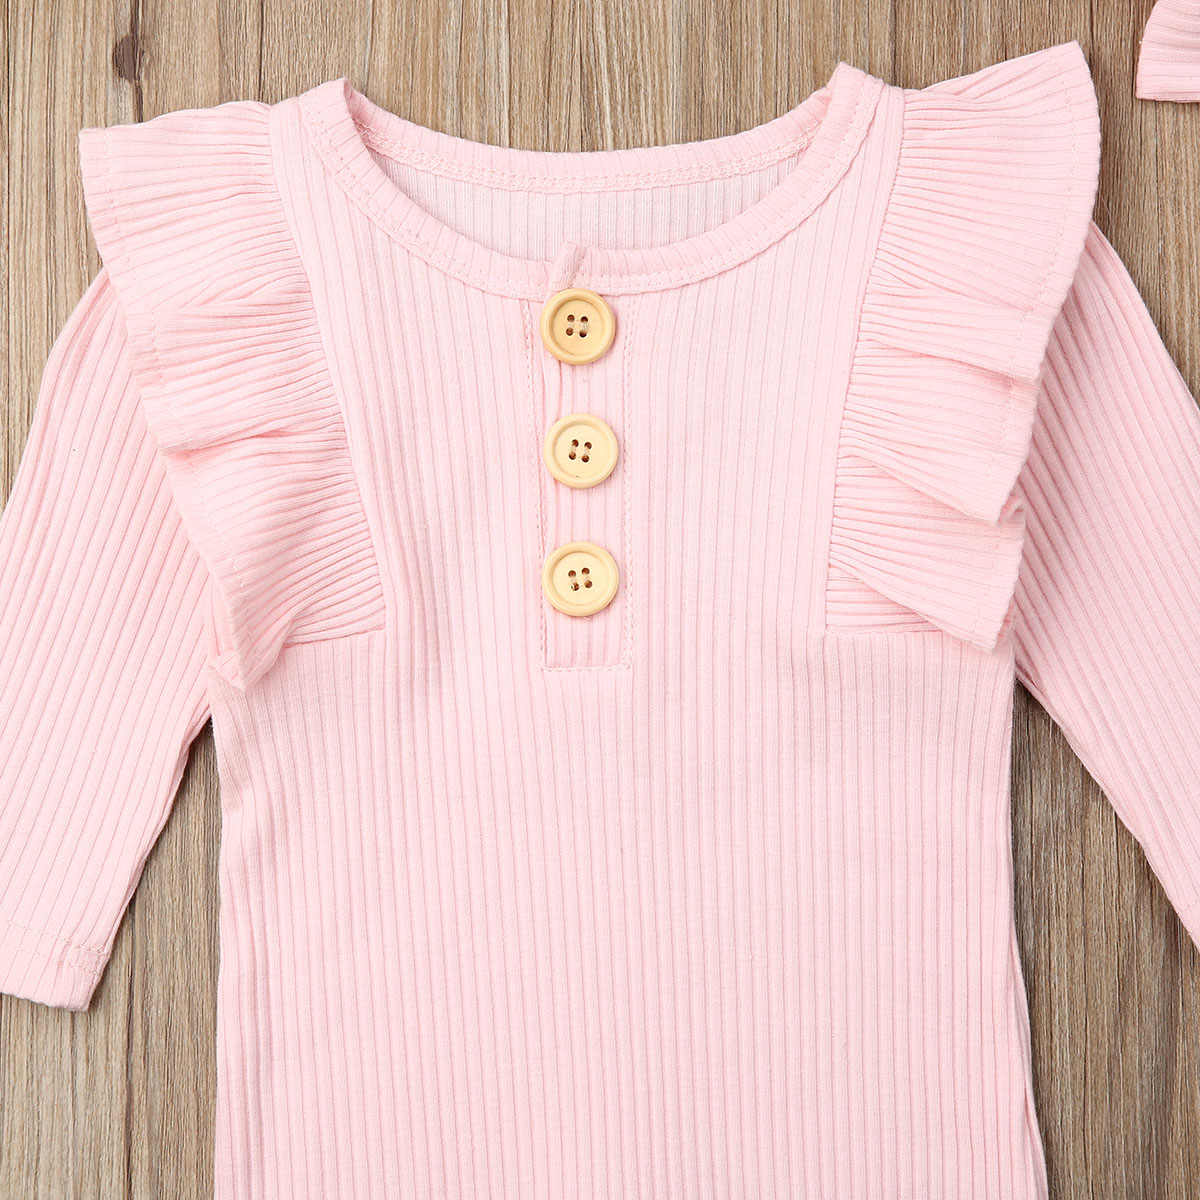 Newborn Baby Boy Girl Long Sleeve Romper Jumpsuit Solid Overall Headband Infant Toddlers Autumn Knitted Clothes Set